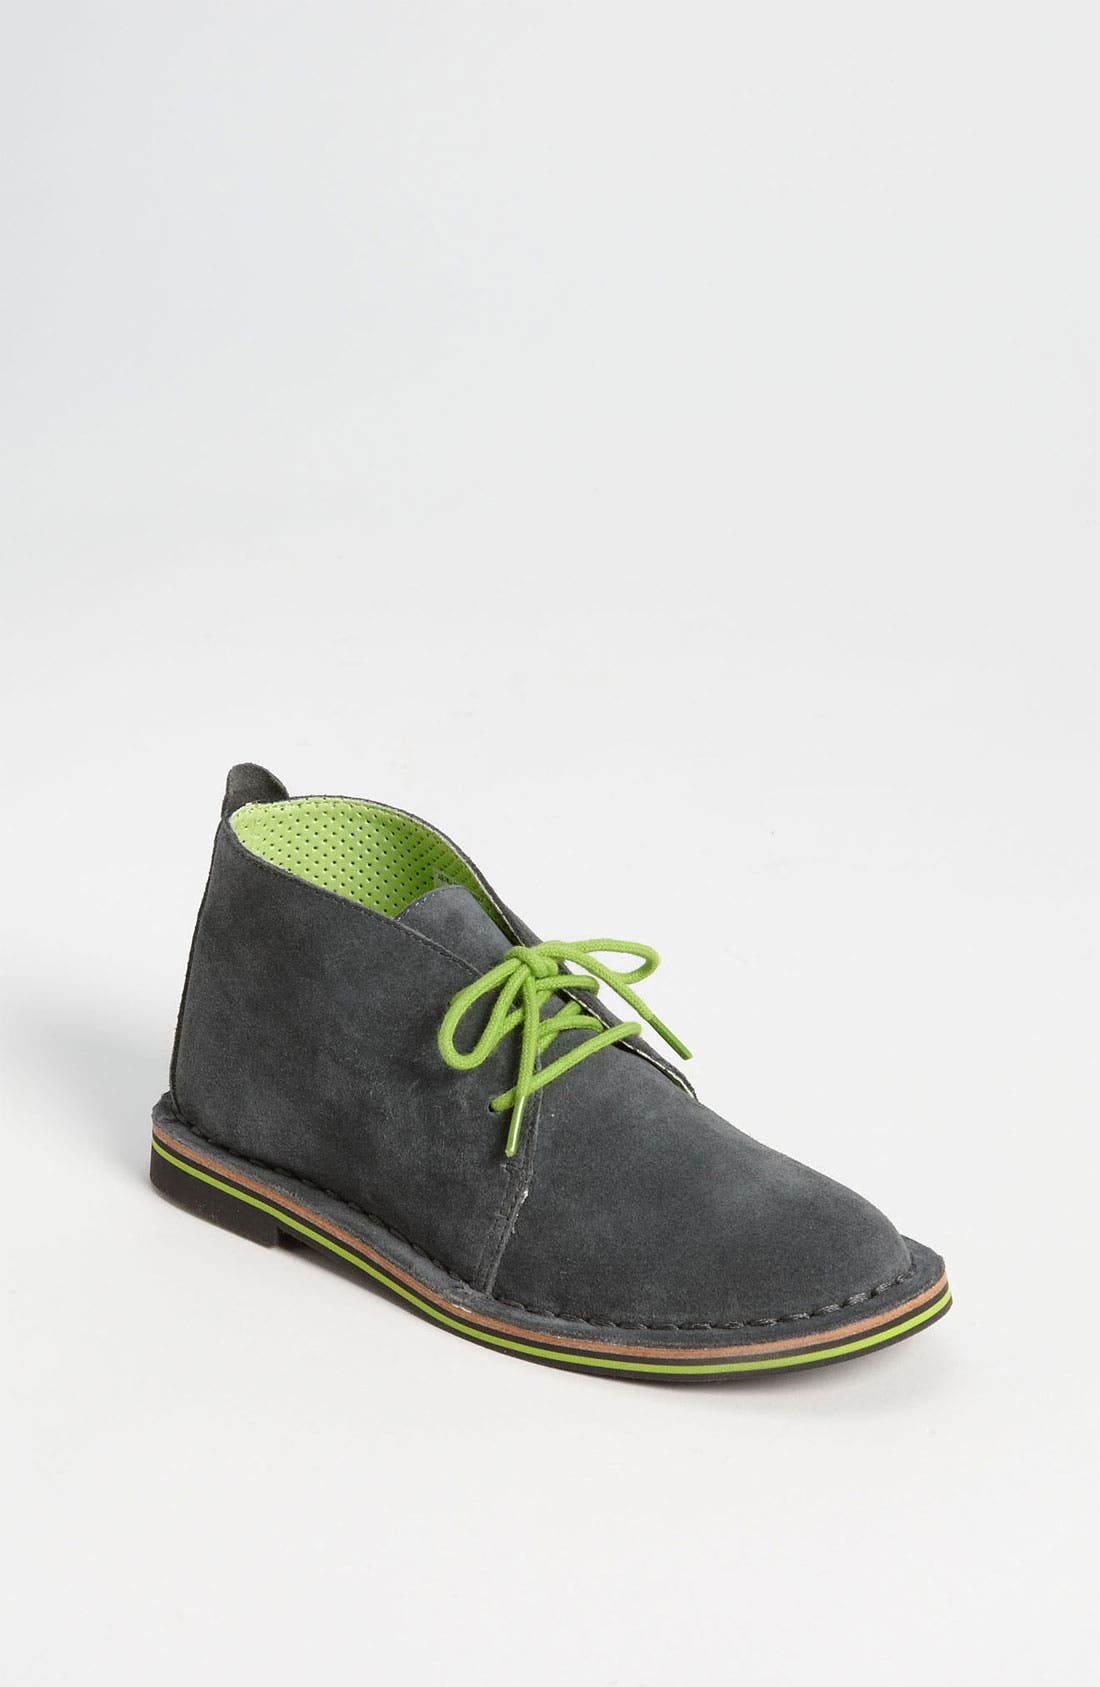 Alternate Image 1 Selected - Cole Haan 'Air Paul - Stripe' Chukka Boot (Toddler, Little Kid & Big Kid)